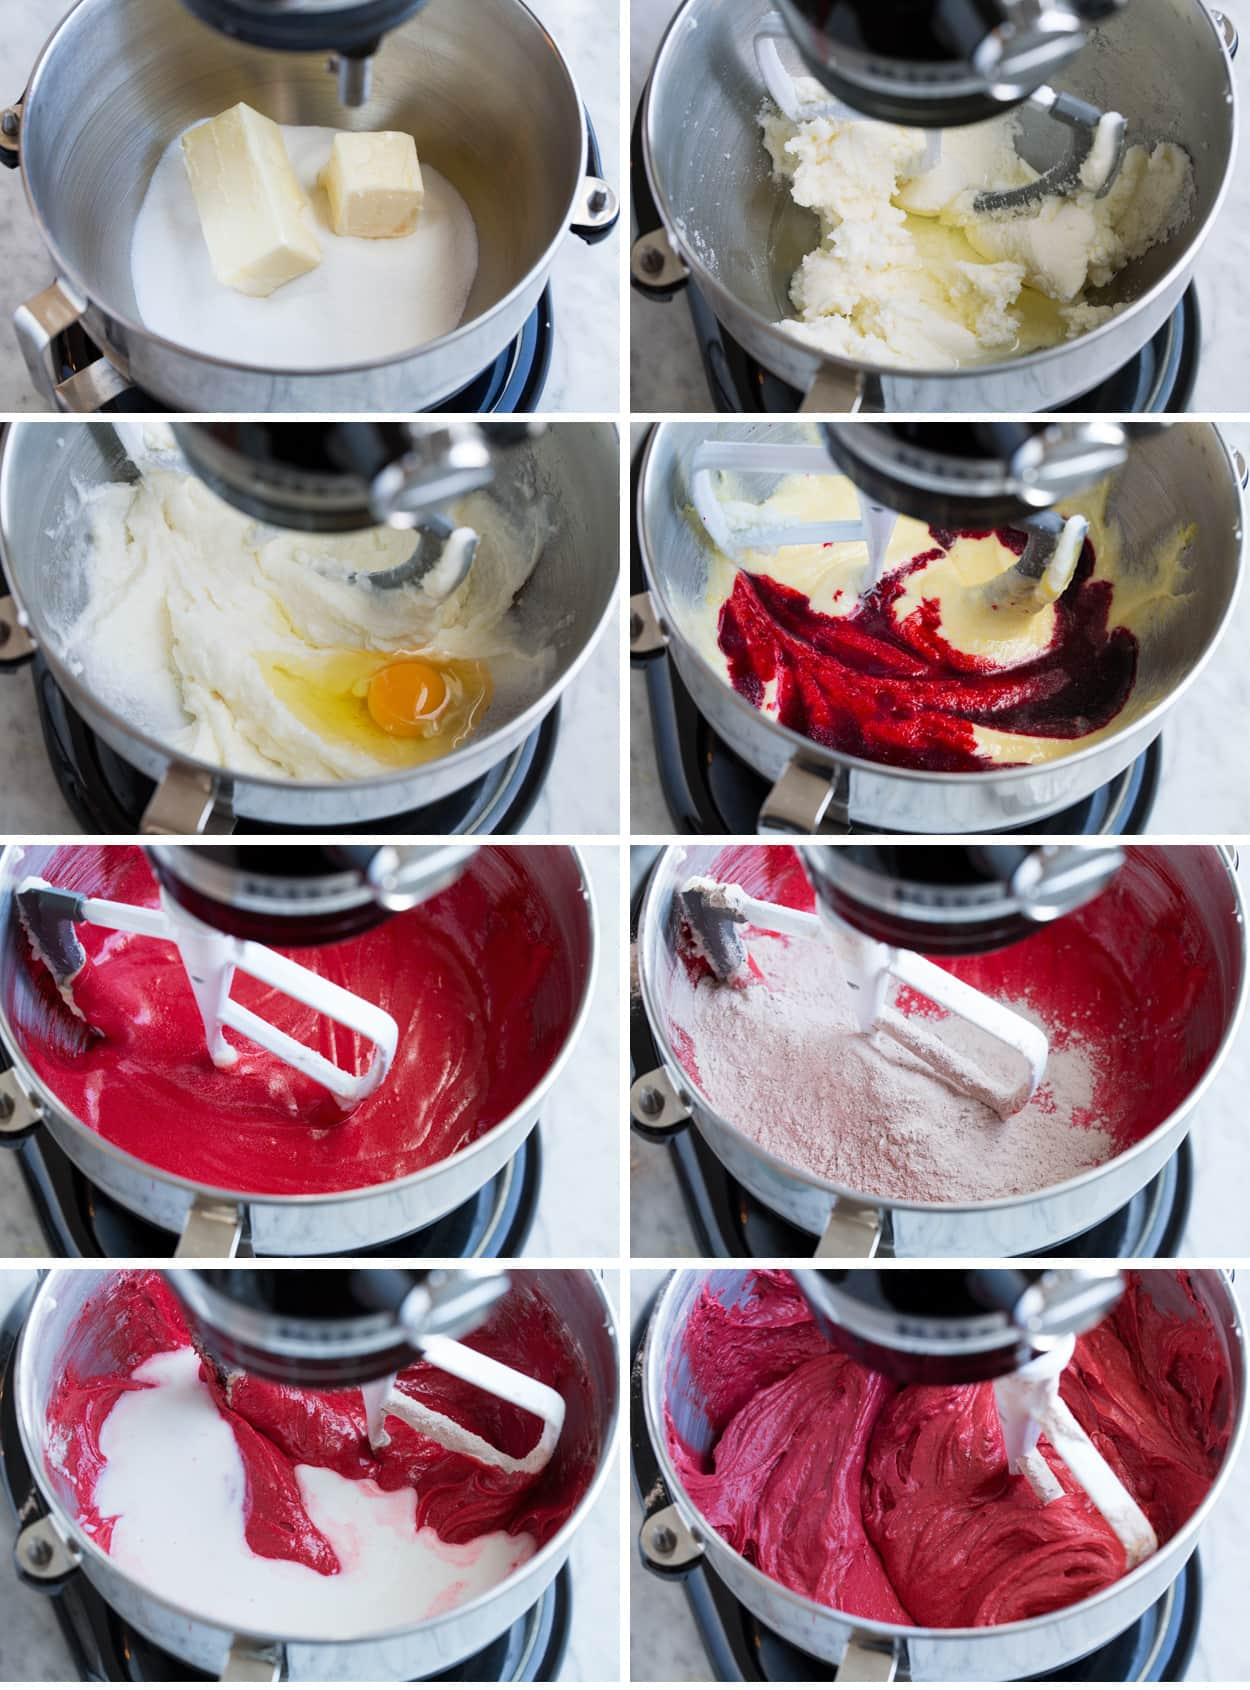 Collage of eight images showing how to make red velvet cake batter in a stand mixer.